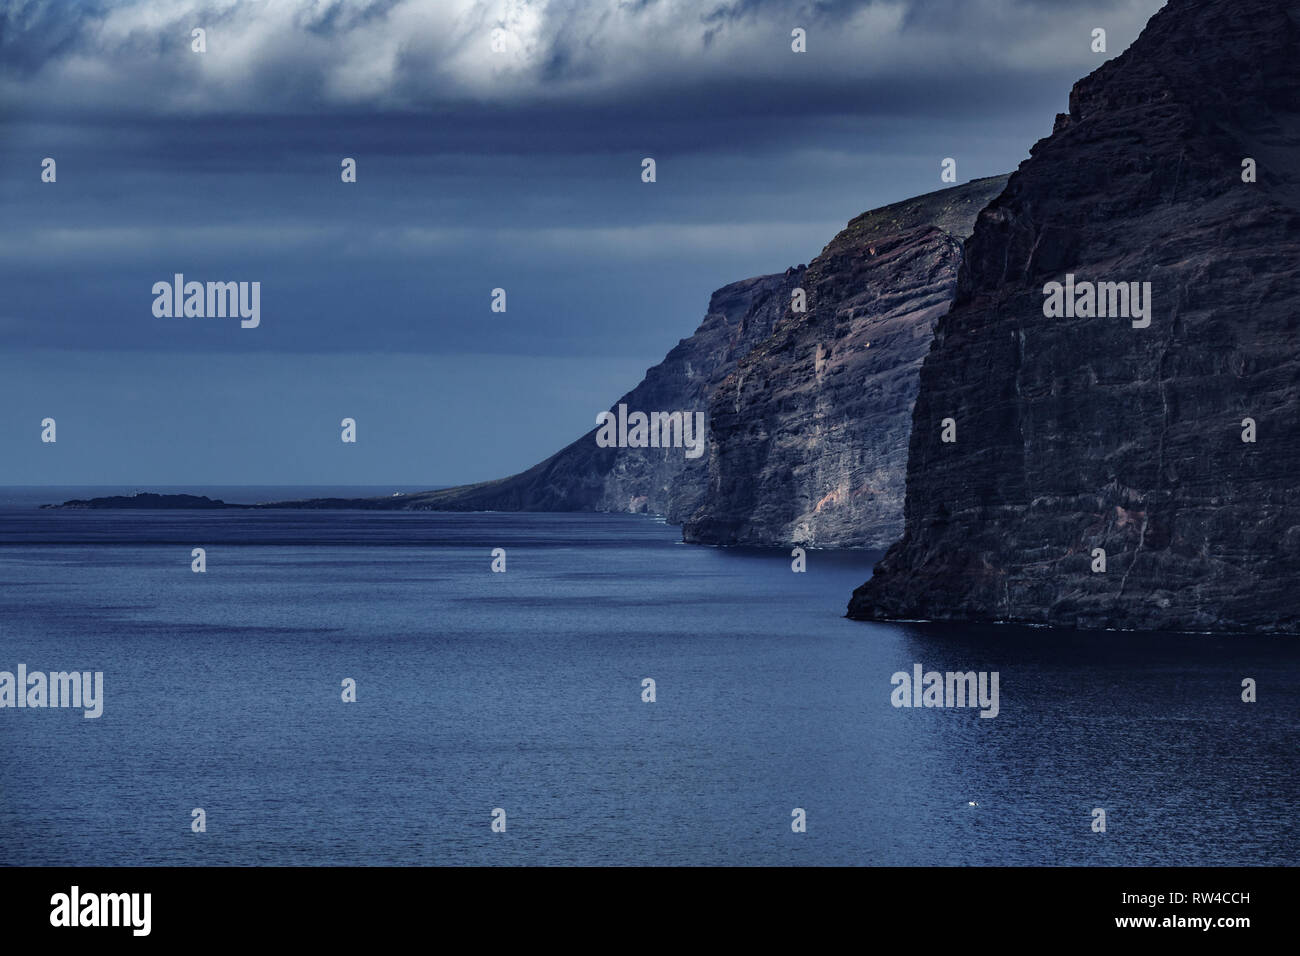 Los Gigantes cliffs dark scene with cloudy sky - Stock Image